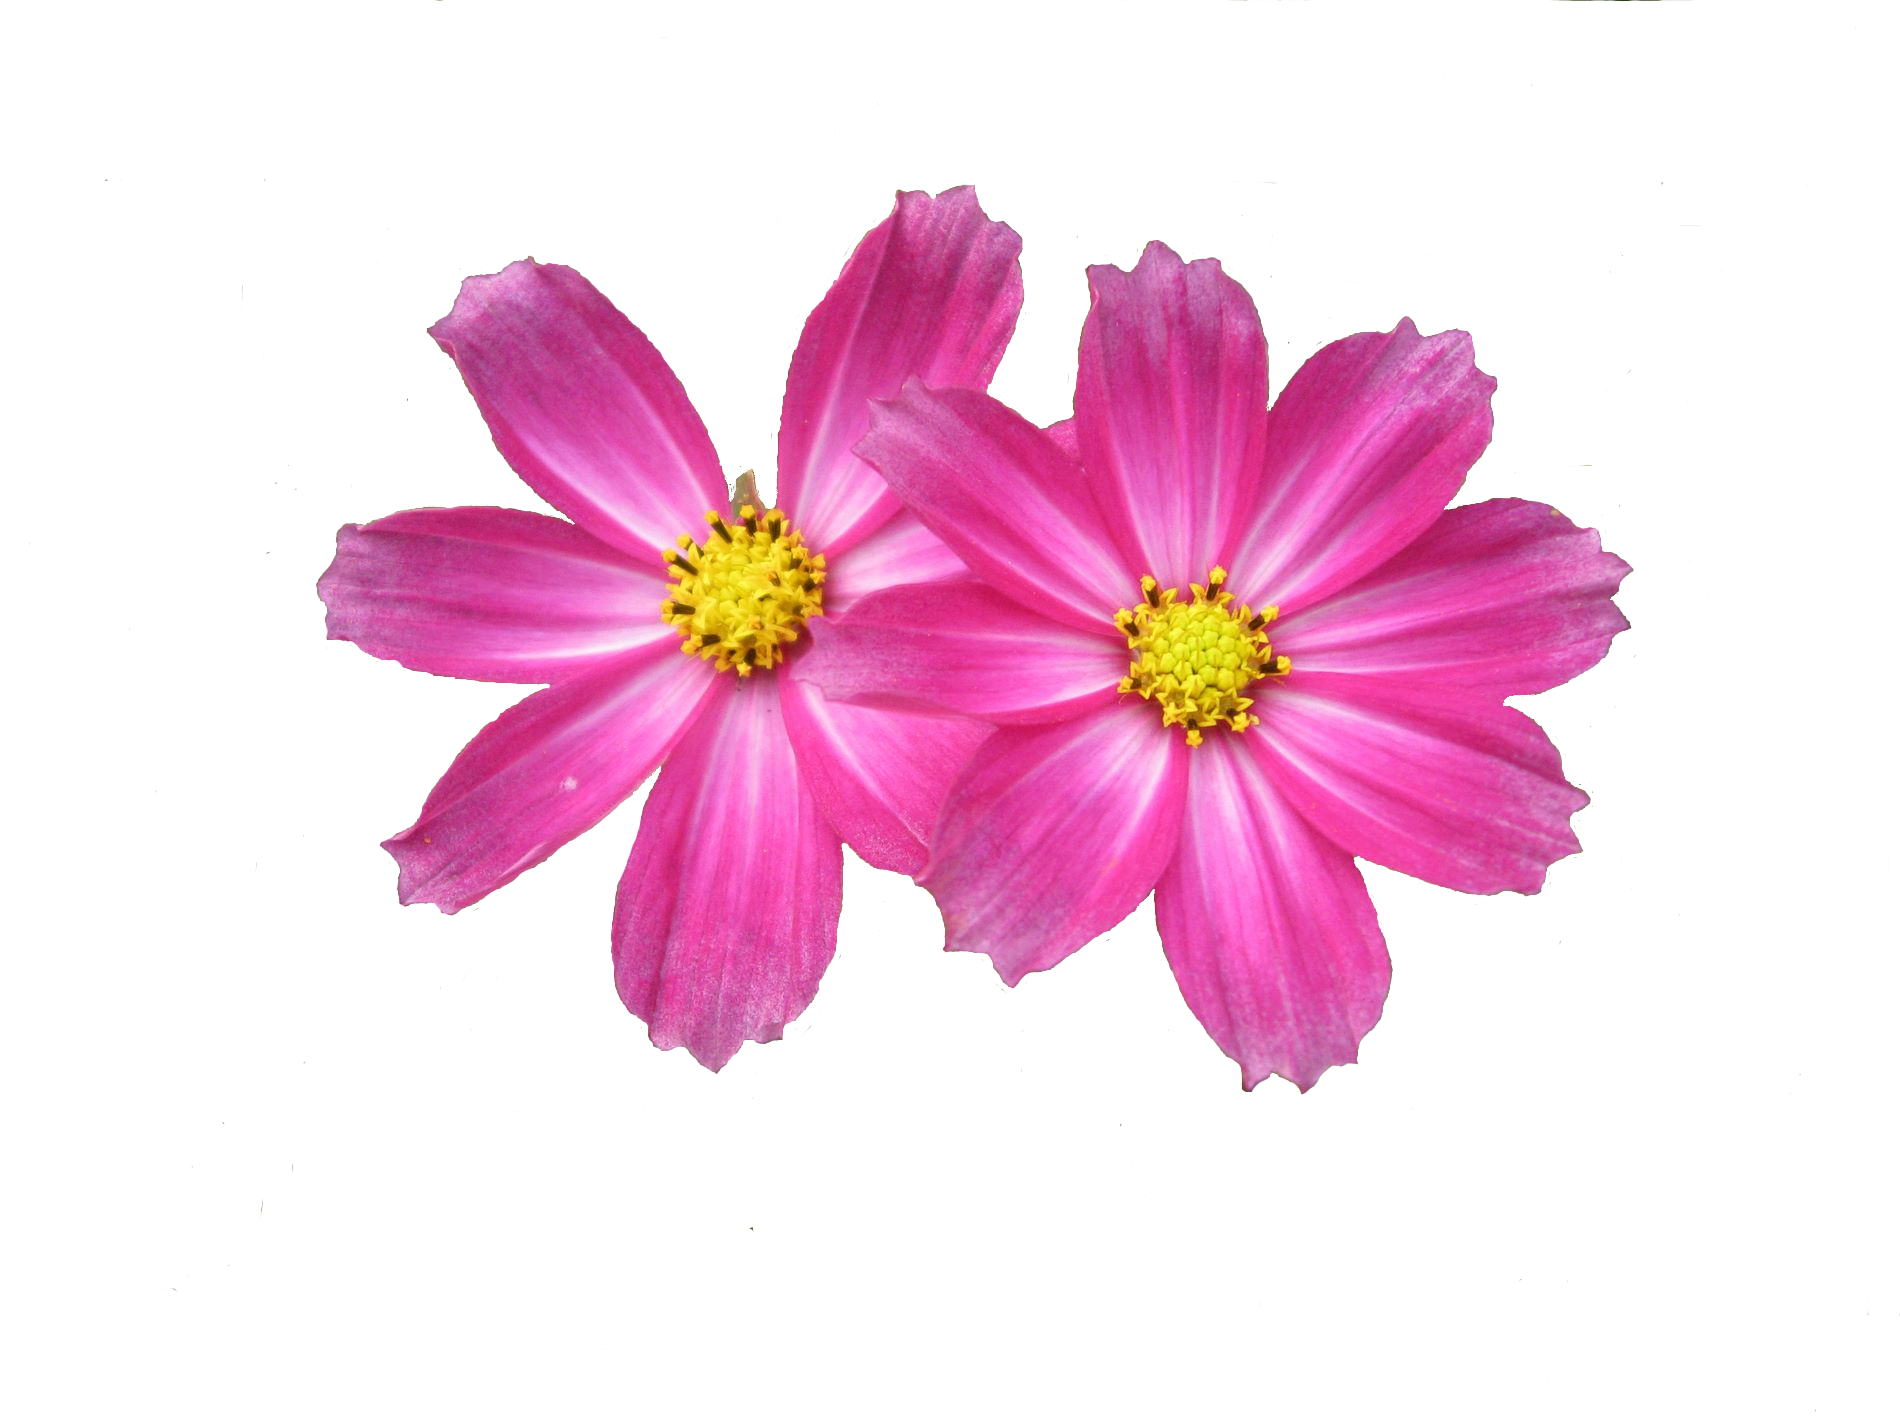 Pink flowers clipart 16 hd wallpaper hdflowerwallpaper pink flowers clipart free wallpaper mightylinksfo Image collections